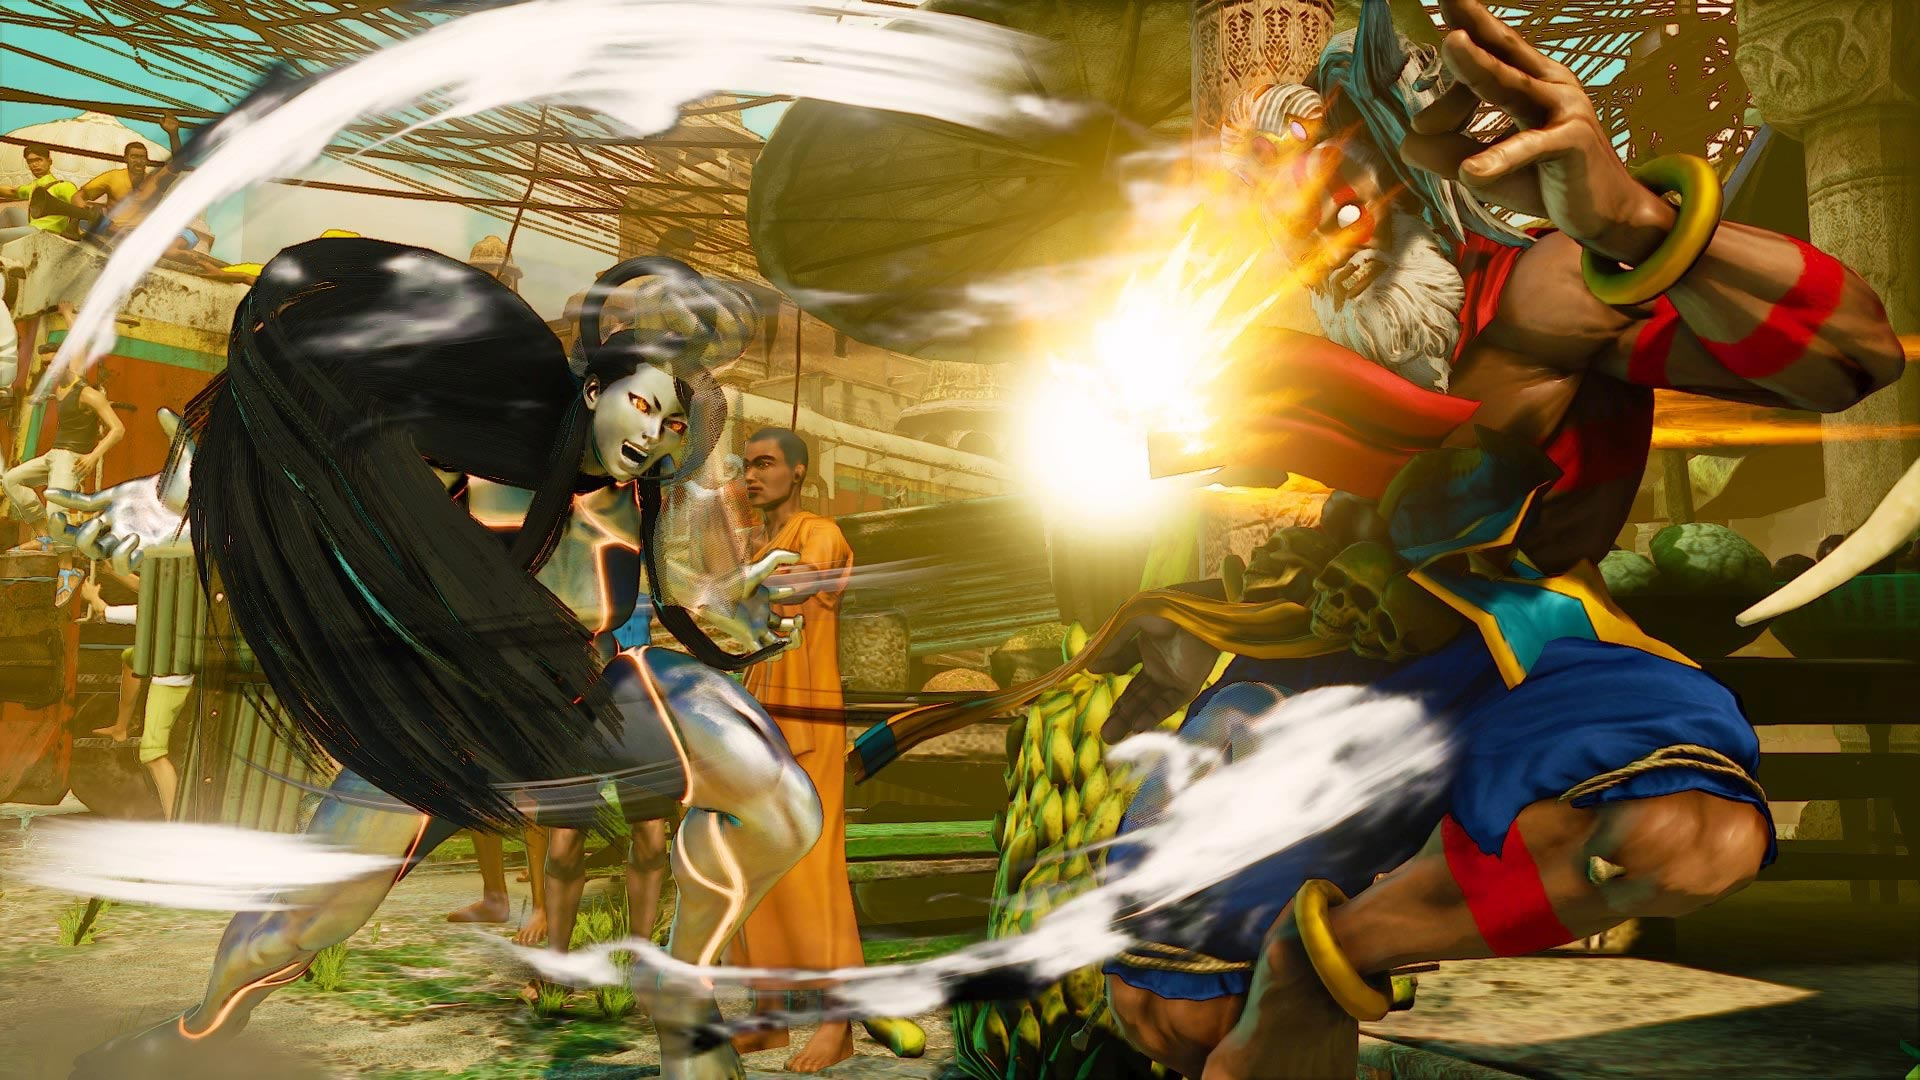 New Seth screenshots in Street Fighter 5: Champion Edition 1 out of 4 image gallery